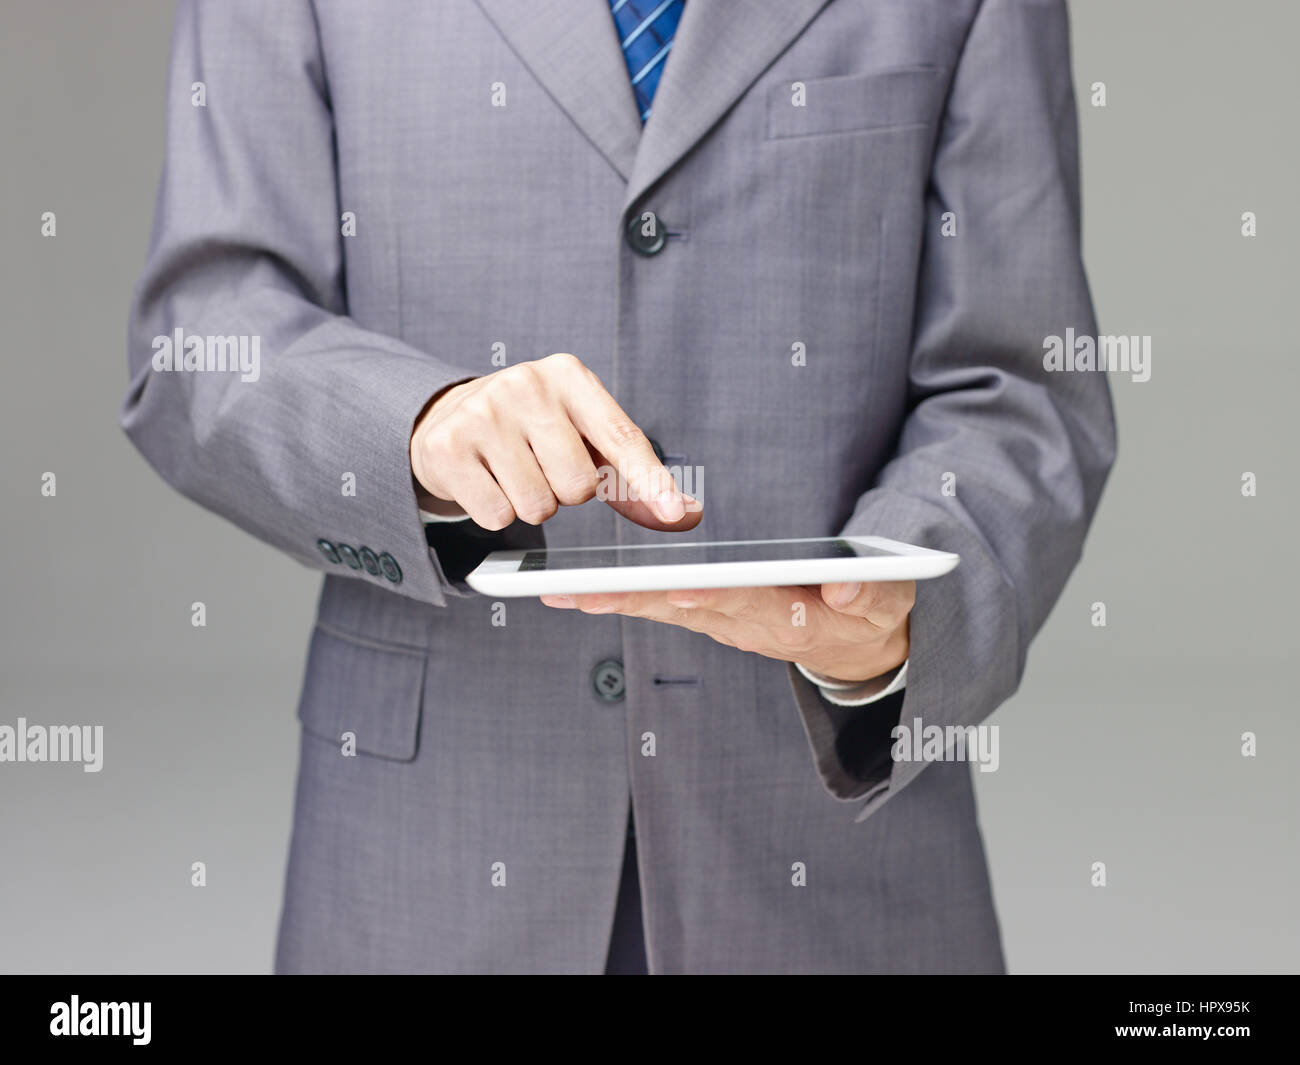 business person in suit using a tablet computer, gray background. - Stock Image